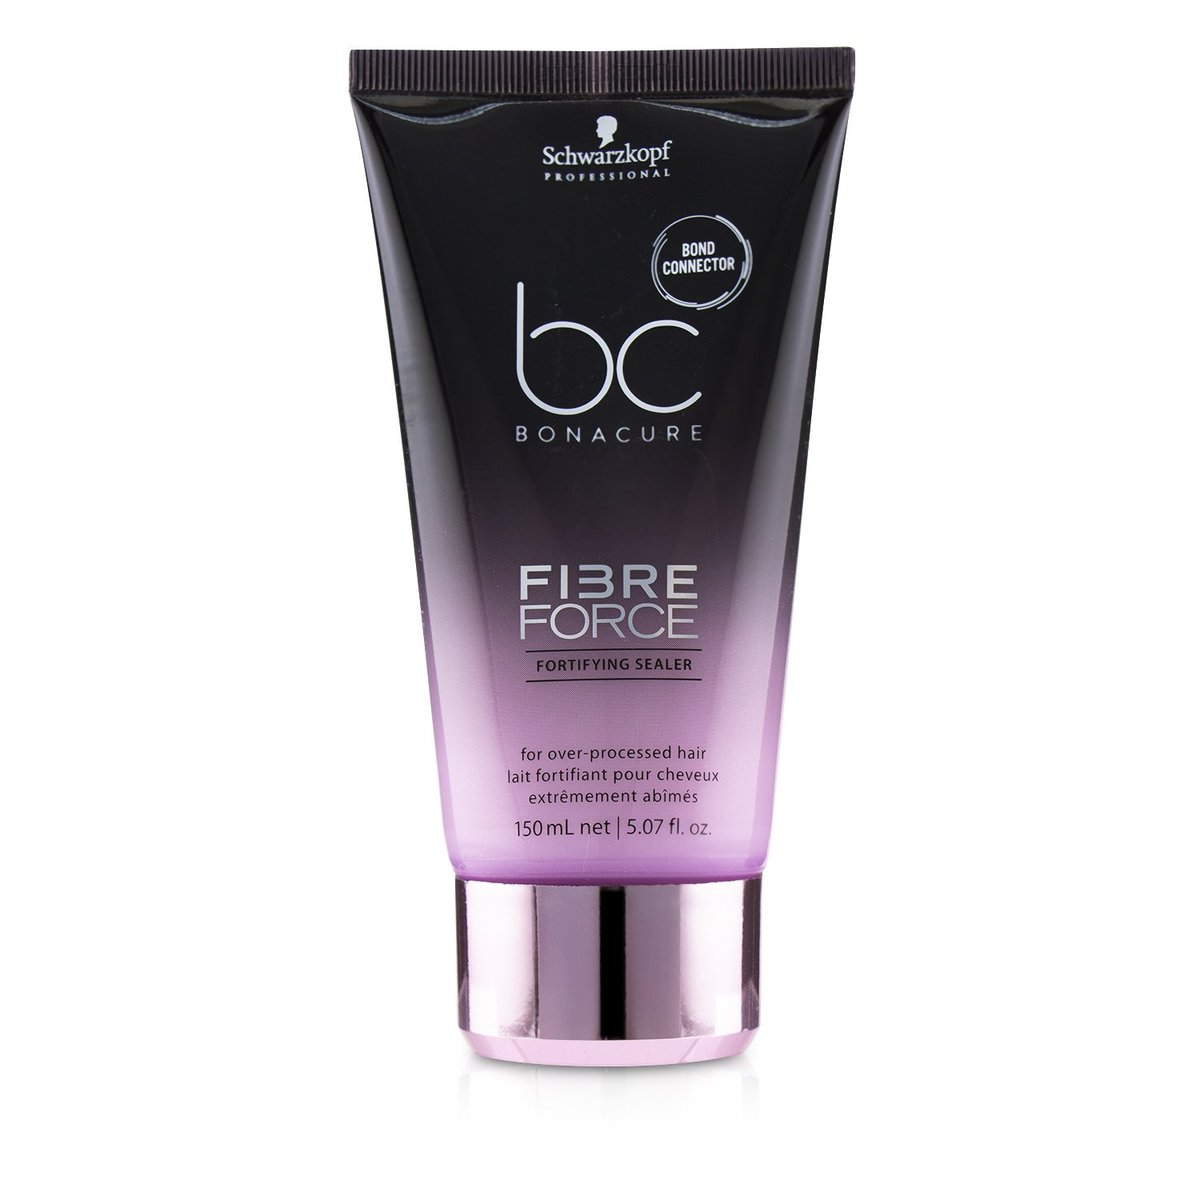 BC Bonacure Fibre Force Fortifying Sealer (For Over-Processed Hair)  -[平行進口][護髮素/頭髮護理]